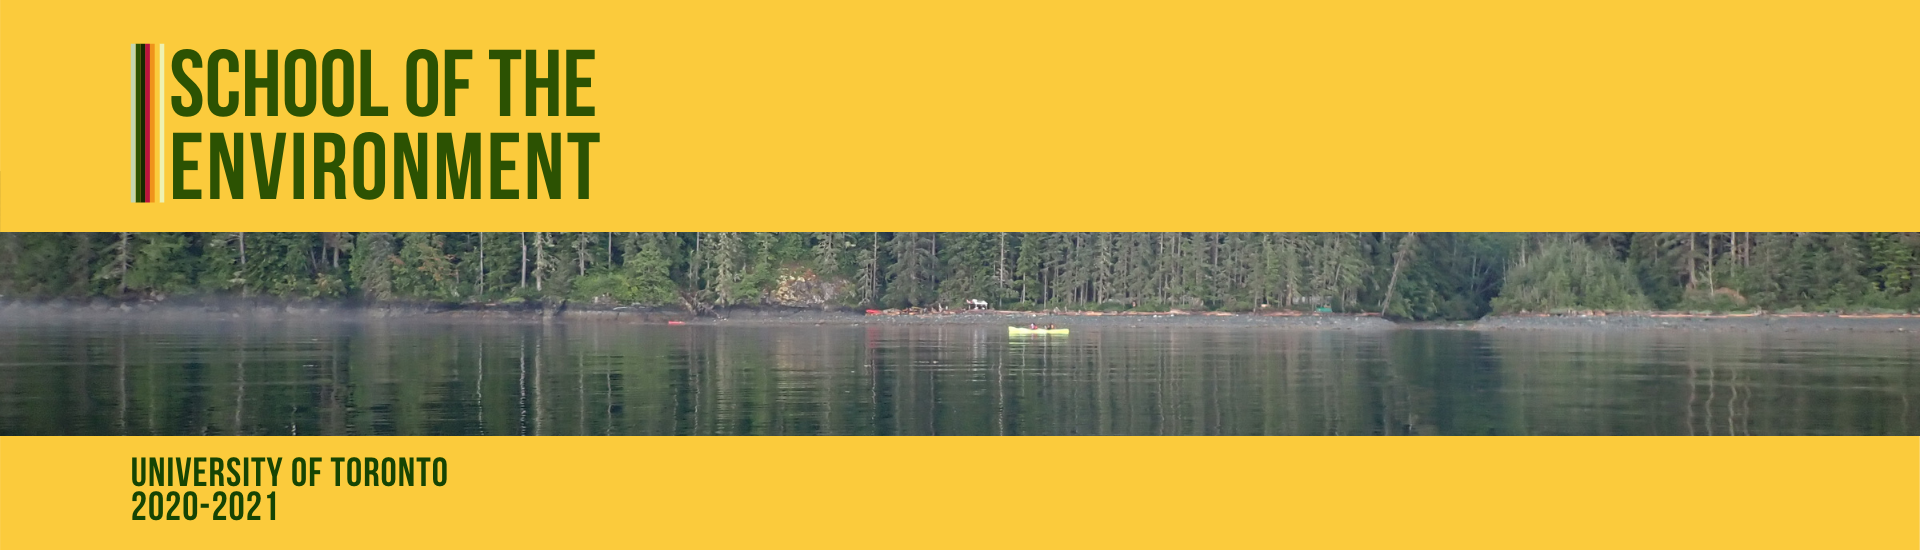 Kayak on a still lake with pine trees in the background.